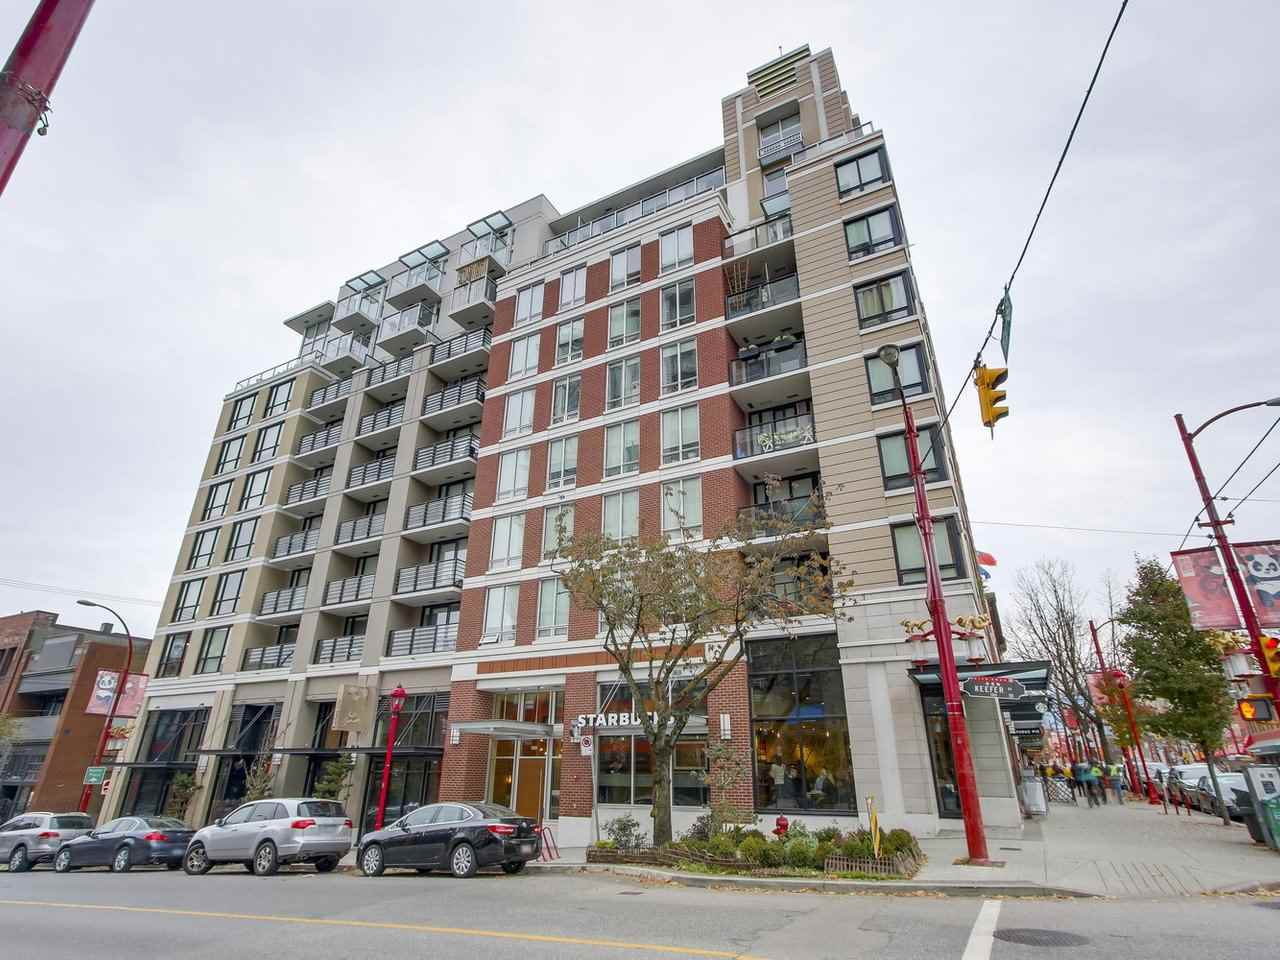 Main Photo: 510 189 KEEFER STREET in Vancouver: Downtown VE Condo for sale (Vancouver East)  : MLS®# R2220669